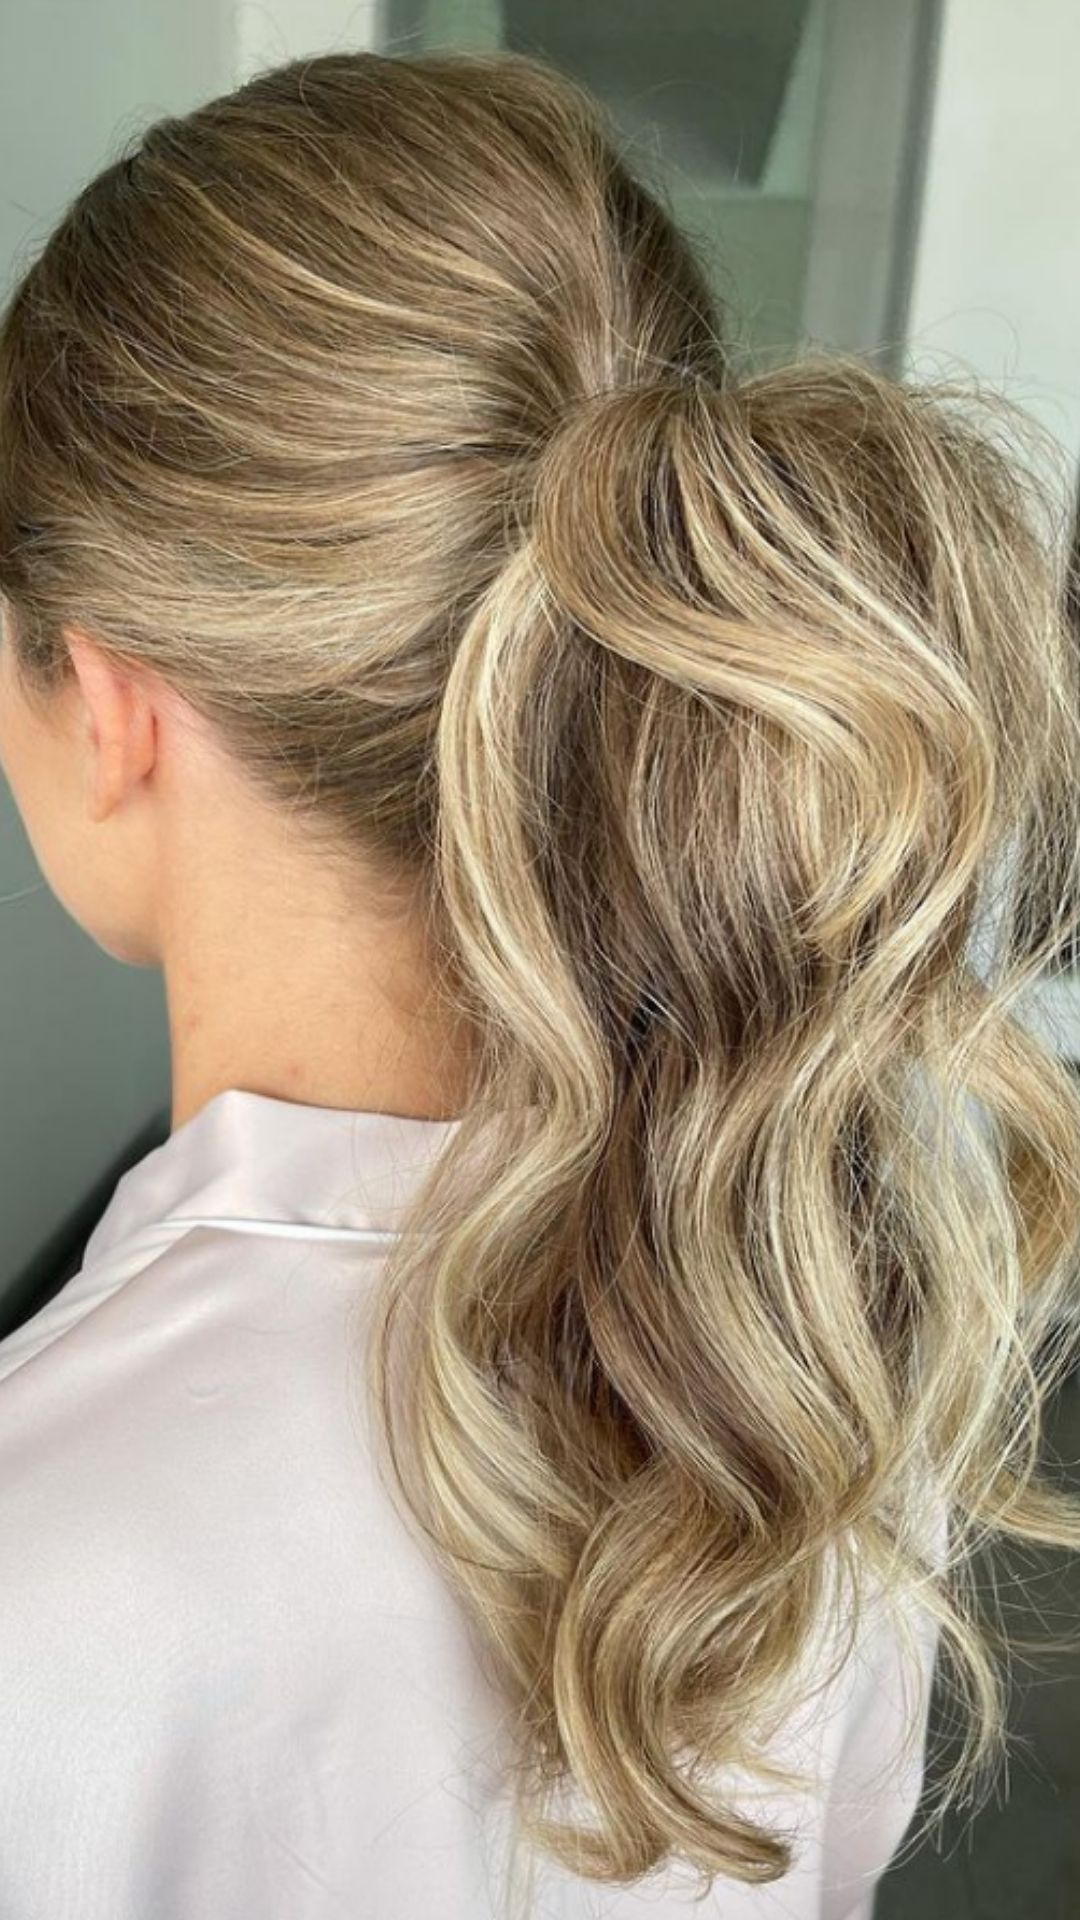 35 Easy ponytail hairstyle and summer long hair ideas for 2021